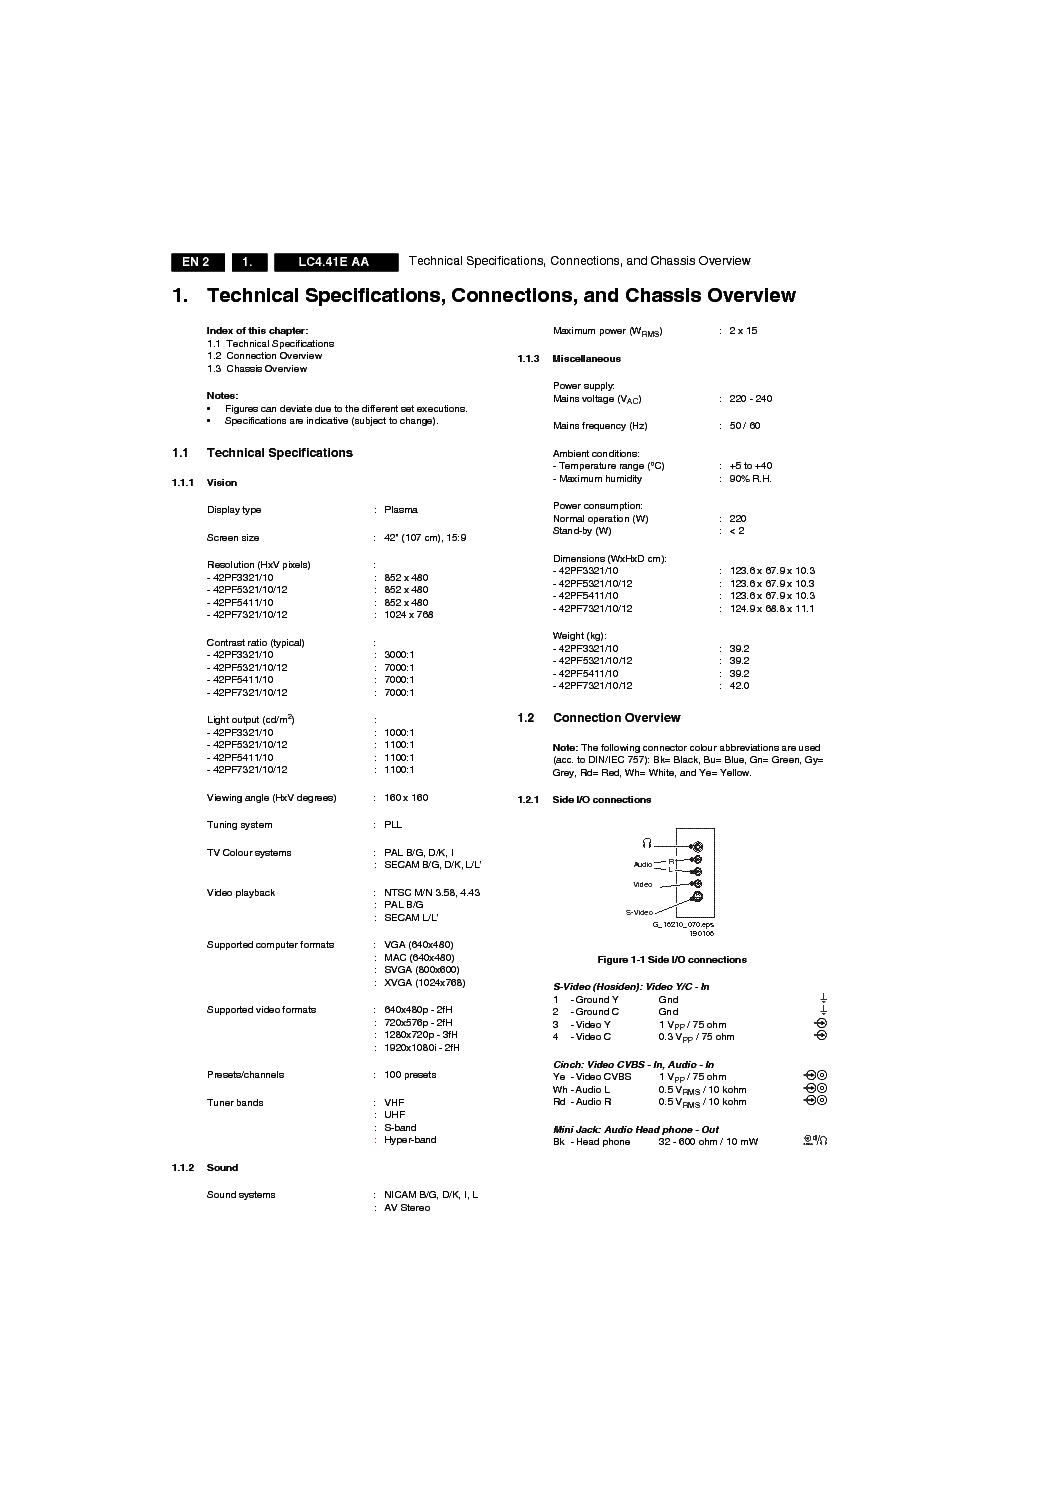 PHILIPS CHASSIS LC4.41E-AA SM service manual (2nd page)